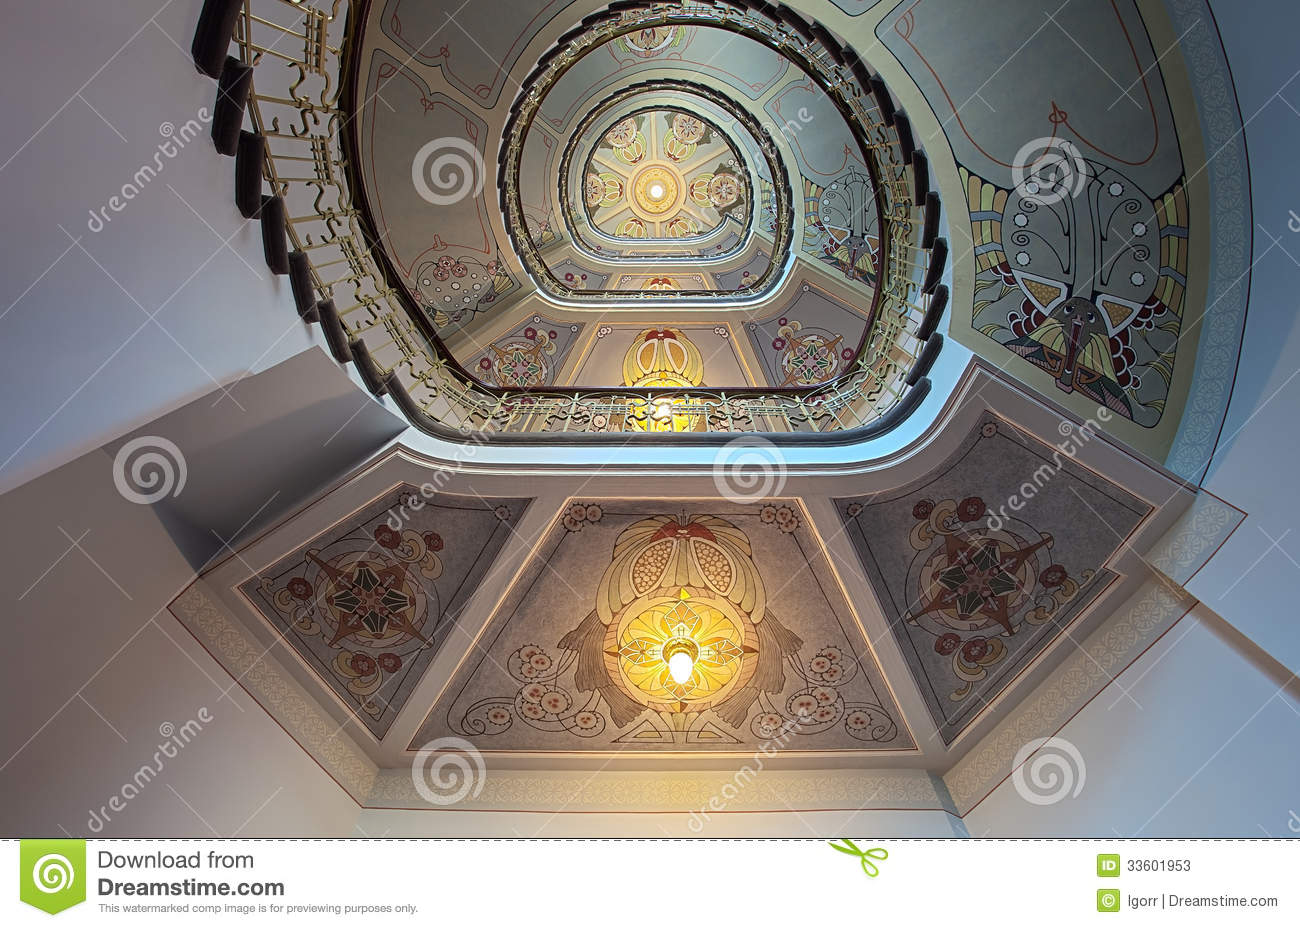 Art Nouveau Riga Museum Ladder In National Museum Of Art Nouveau In Riga Stock Image